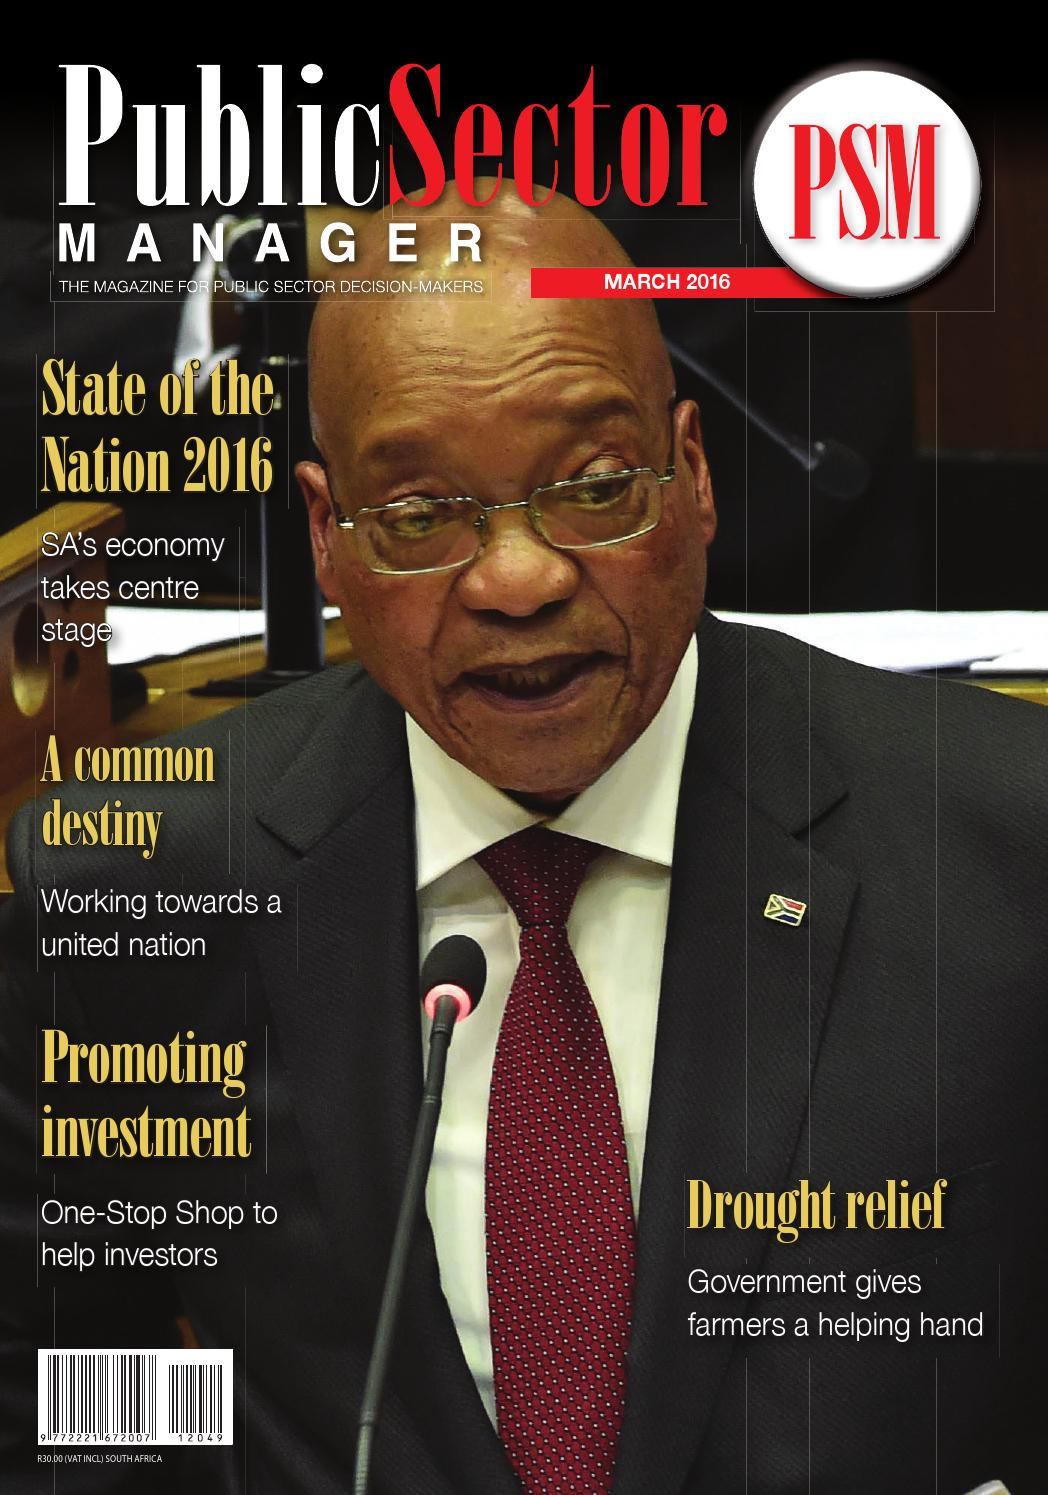 PSM 2016 March Edition by Topco Media - issuu